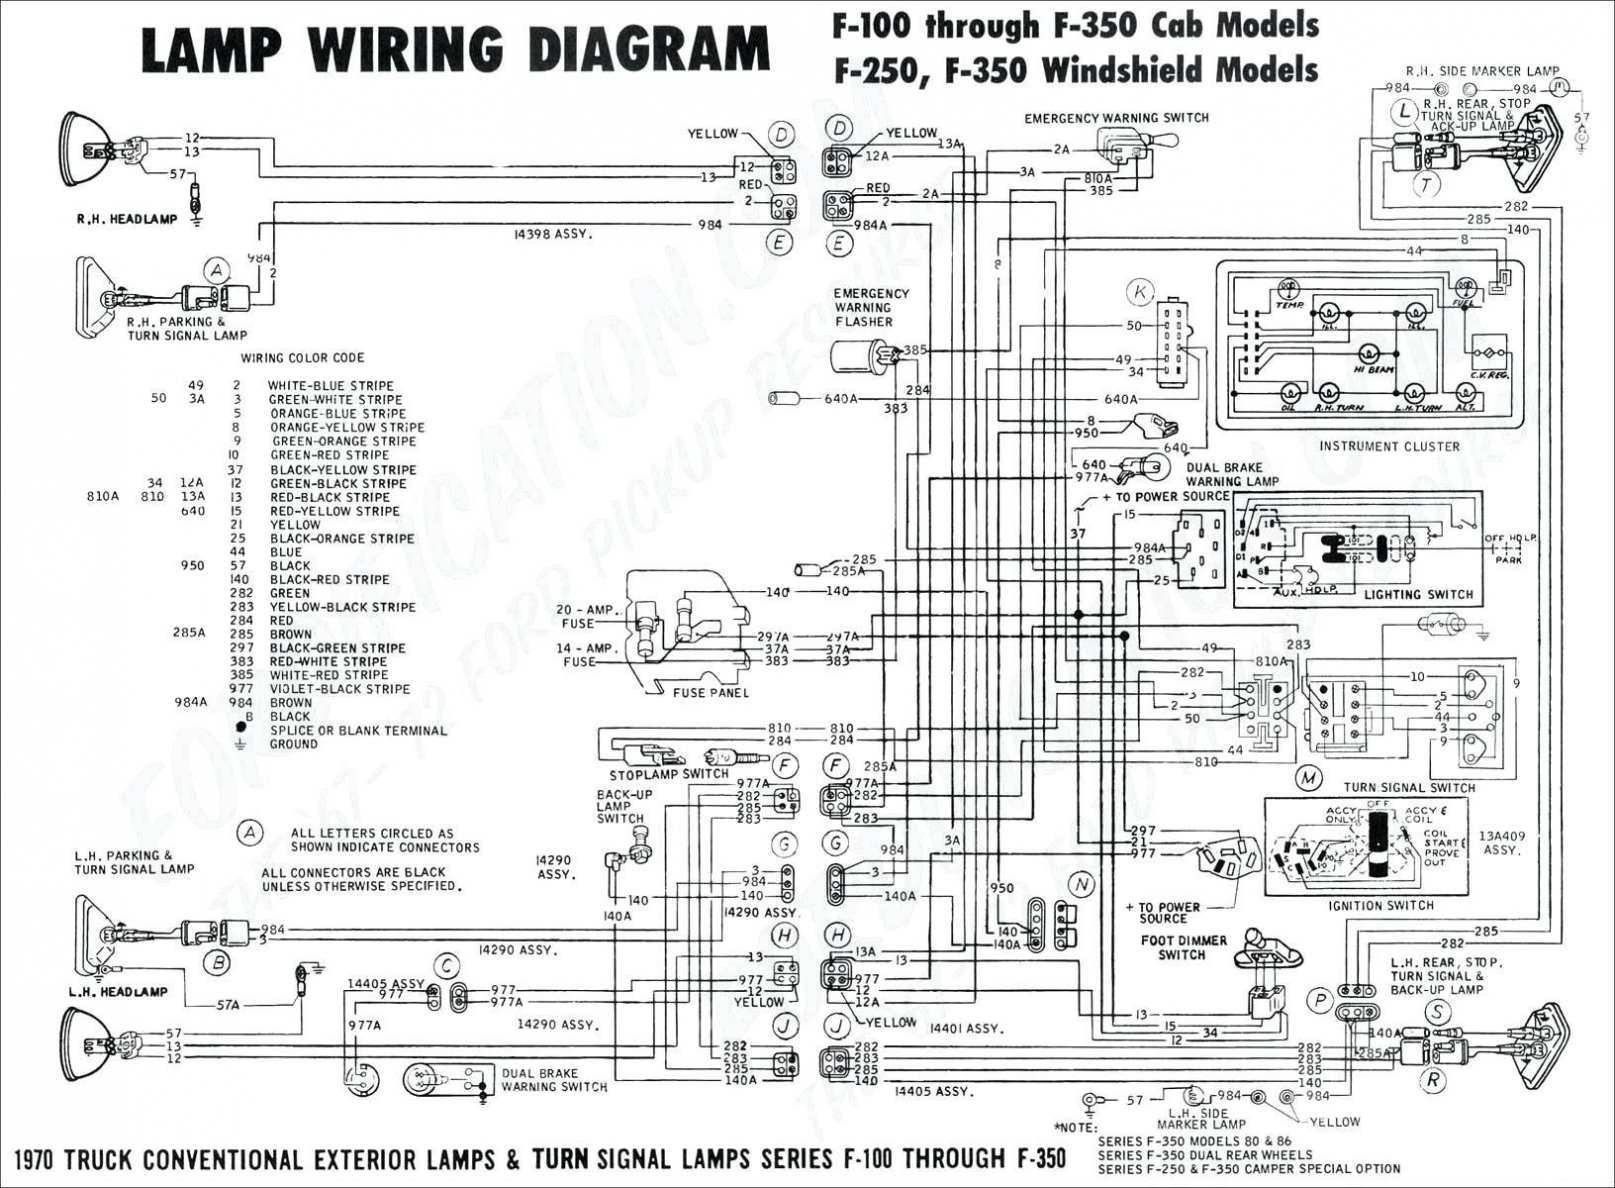 hight resolution of fuse box diagram 2002 cadillac north star data diagram schematic fuse box diagram 2002 cadillac north star